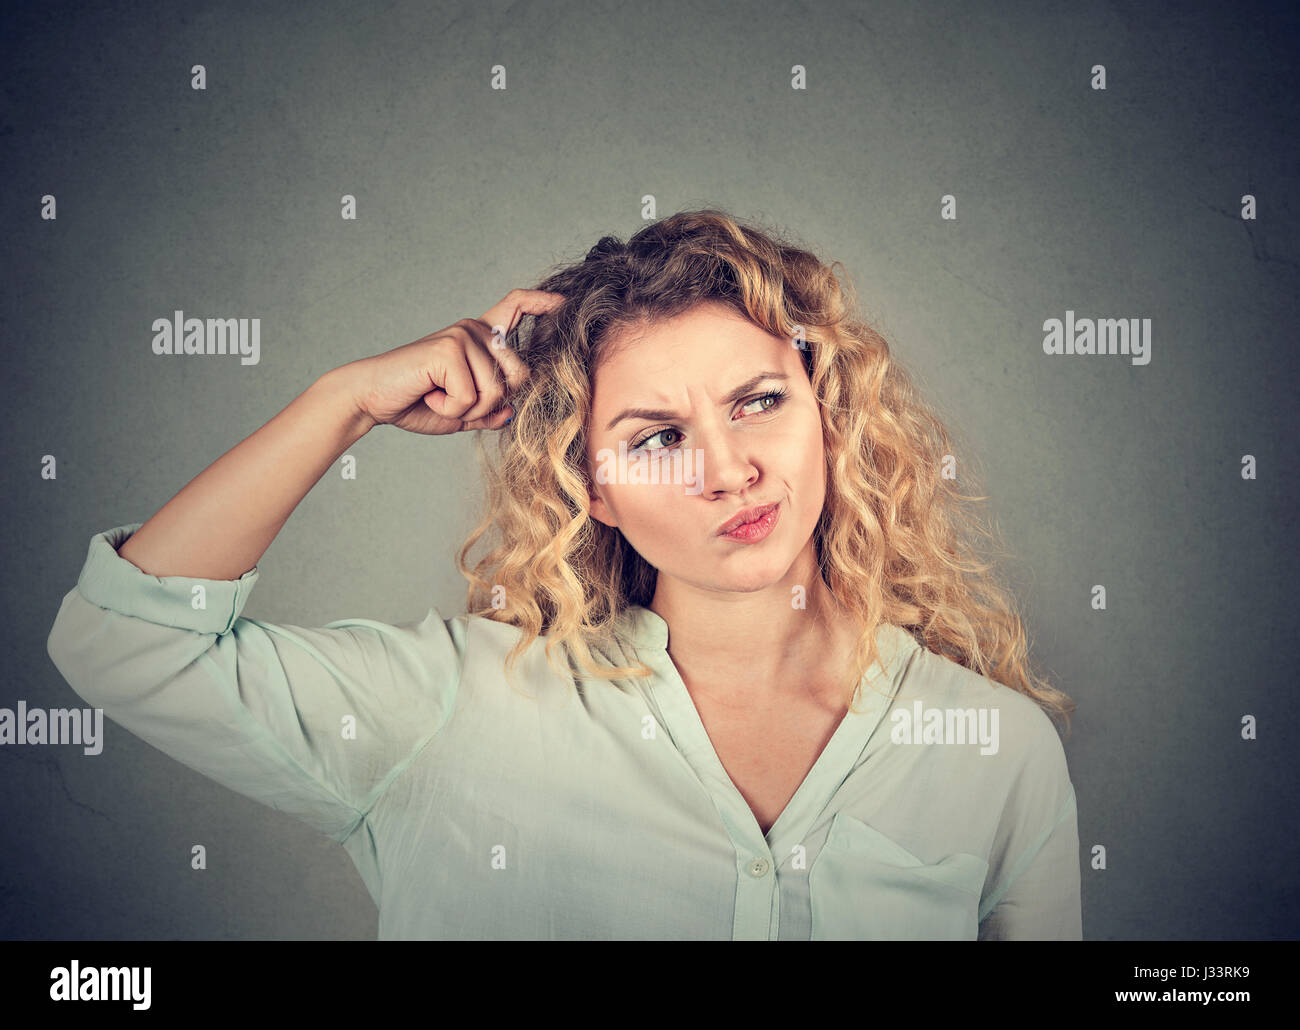 Young woman scratching head, thinking daydreaming about something looking up isolated on gray background. Human - Stock Image